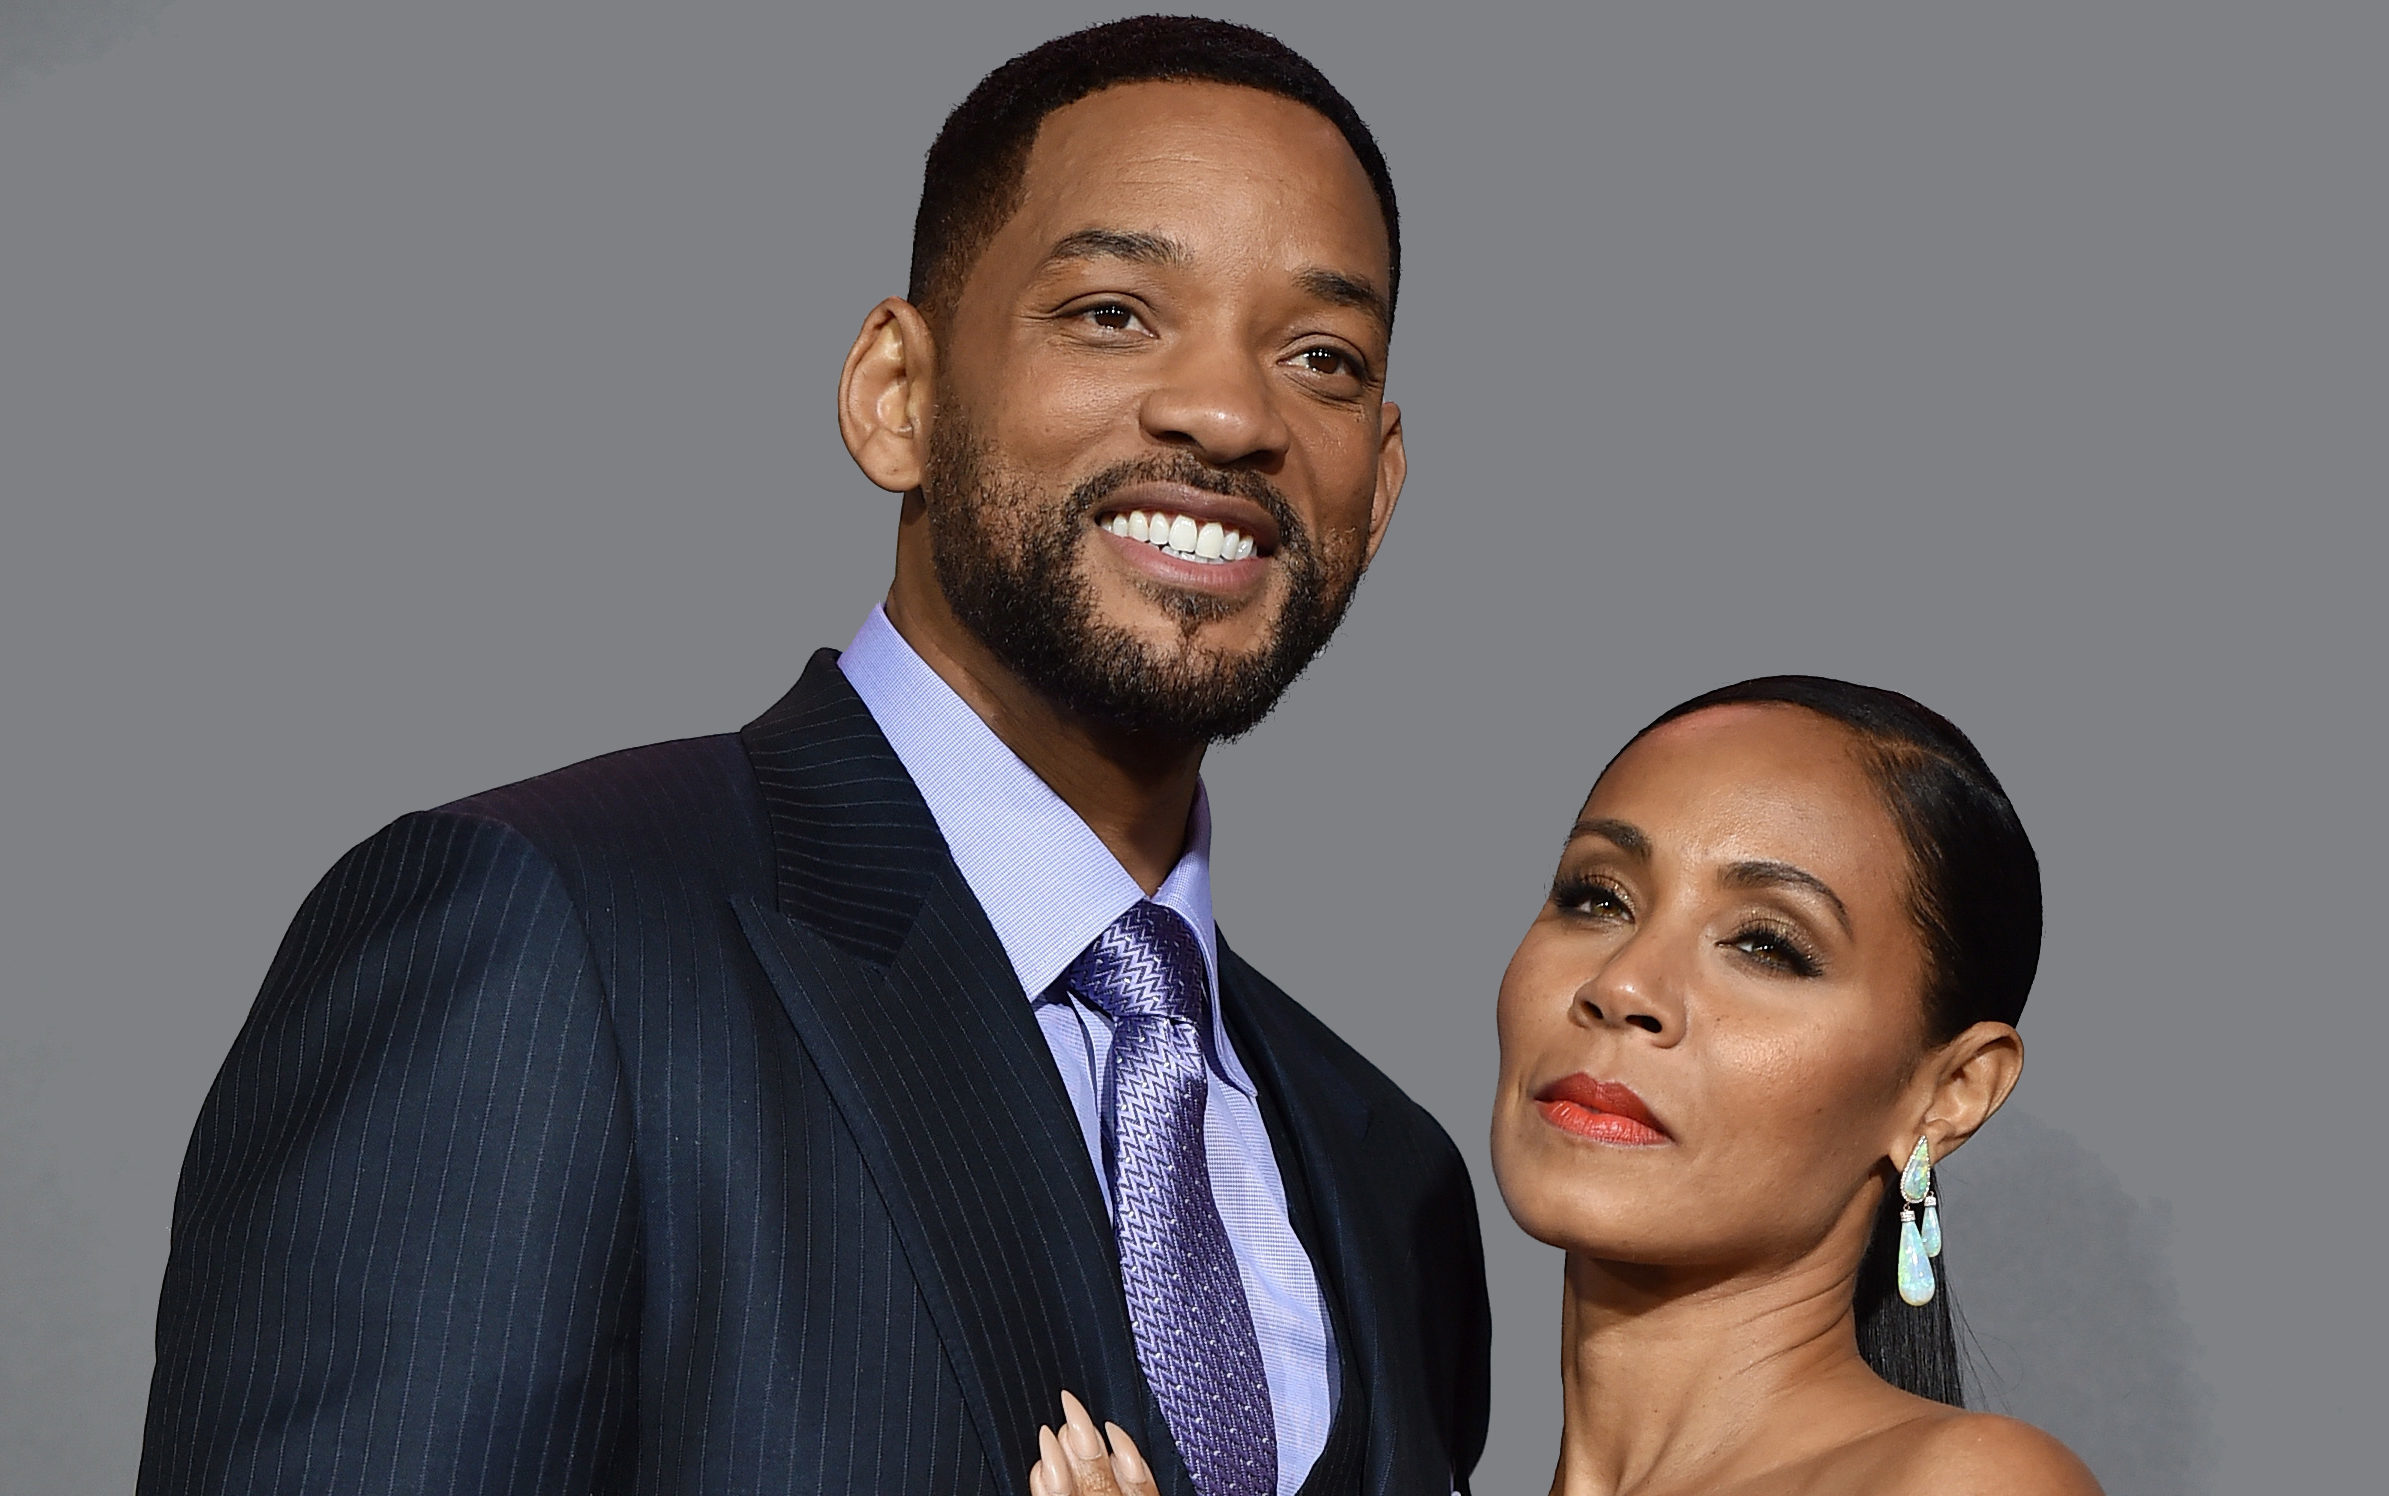 Actors Will Smith and Jada Pinkett Smith (Kevin Winter/Getty Images)